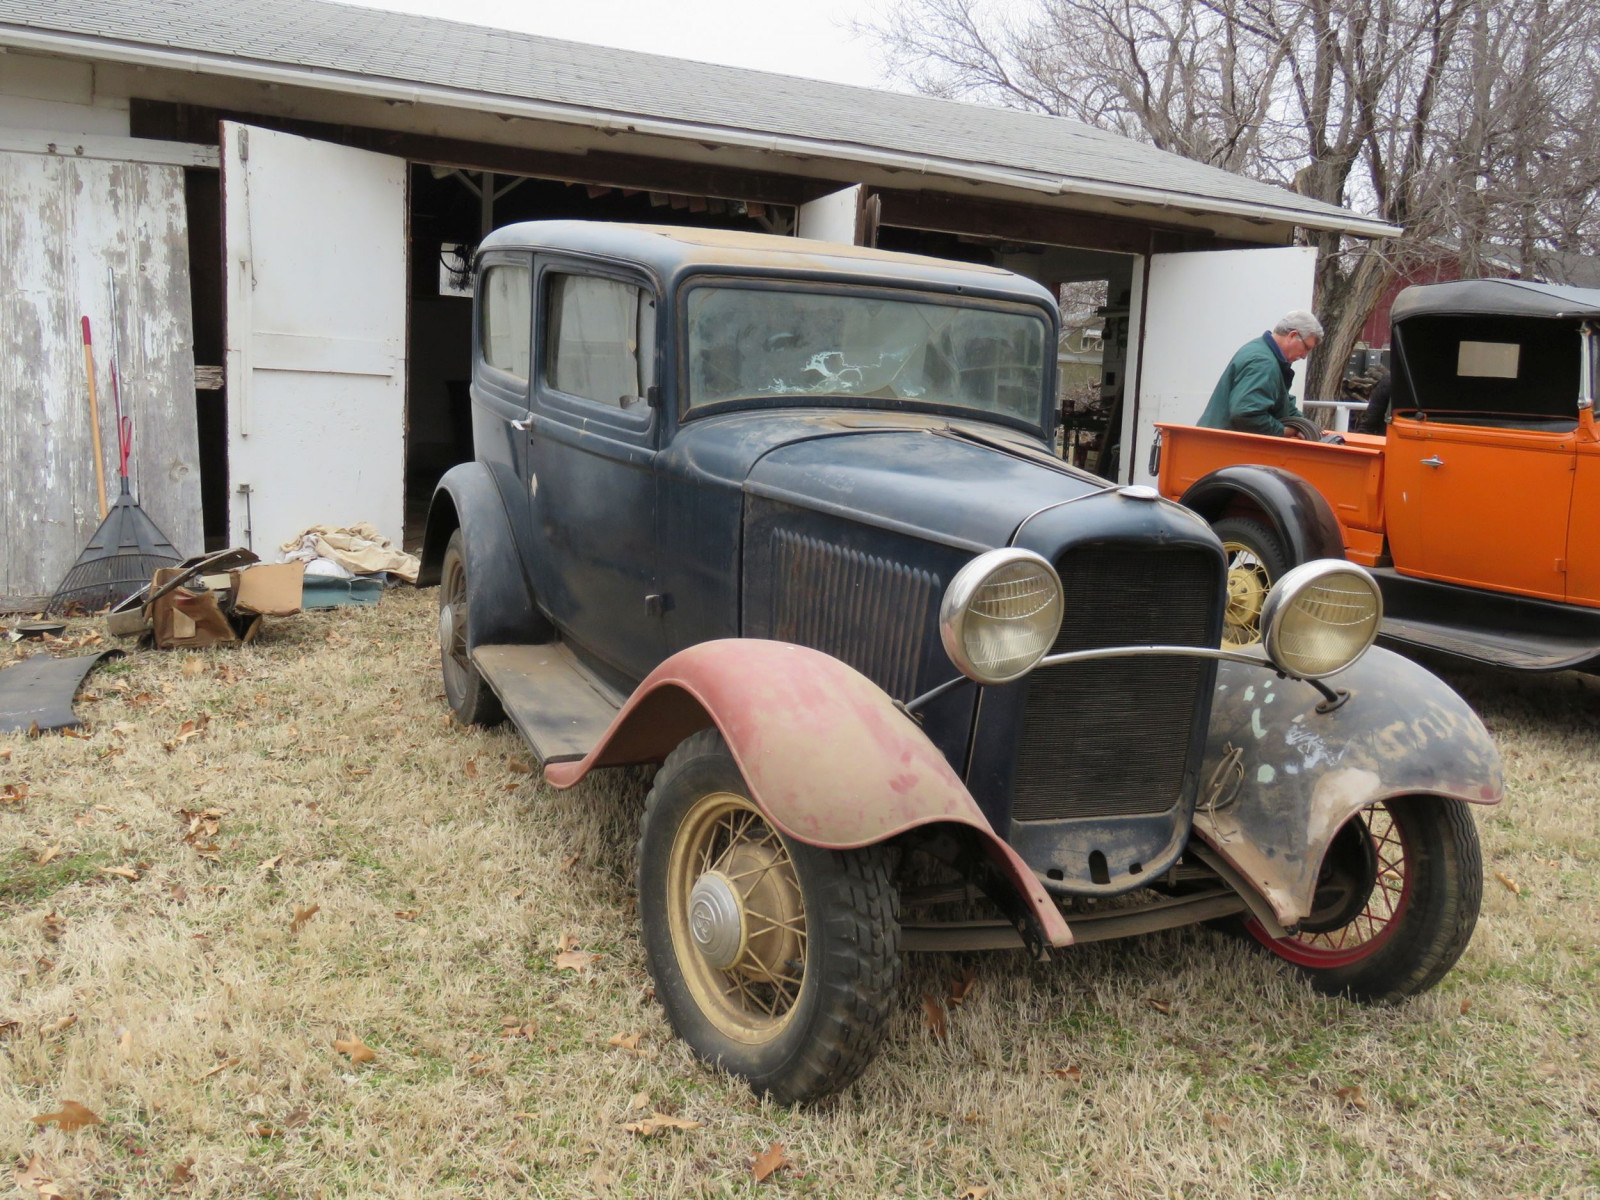 1932 Ford Tudor Sedan Barn Find - Image 1